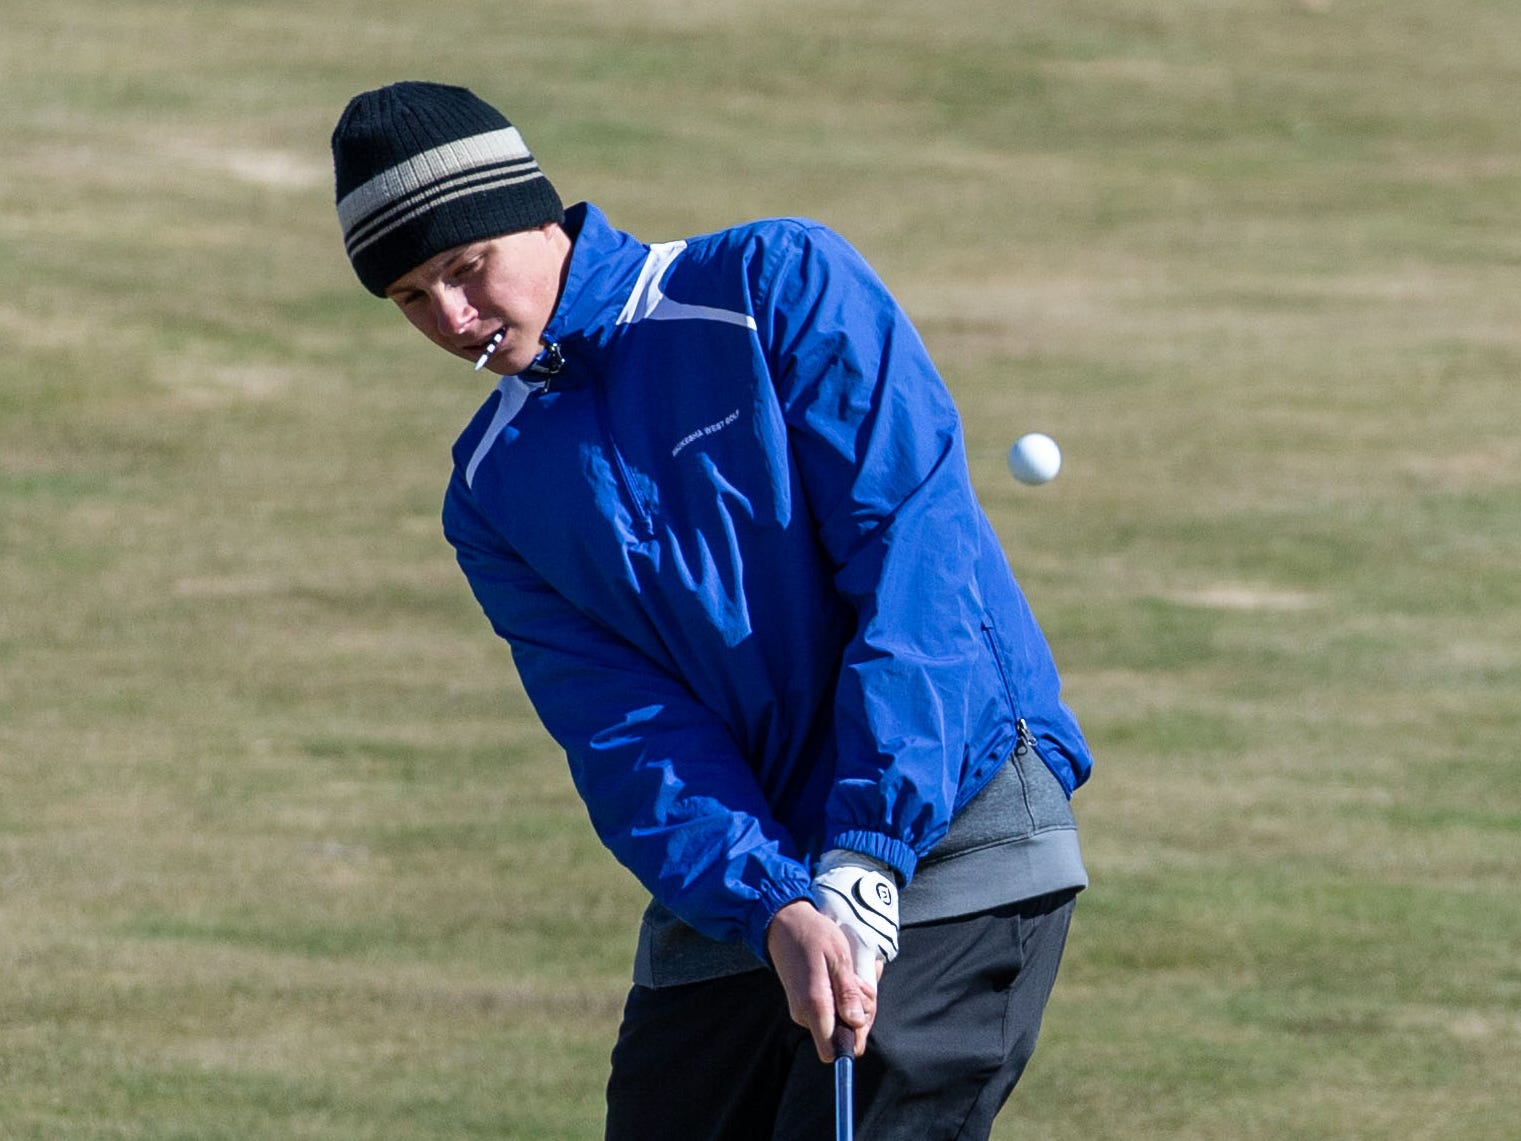 Waukesha West golfer Bradey Lingle competes in the Catholic Memorial 2019 Crusader Invitational at Broadlands Golf Club in North Prairie on Saturday, April 13, 2019.